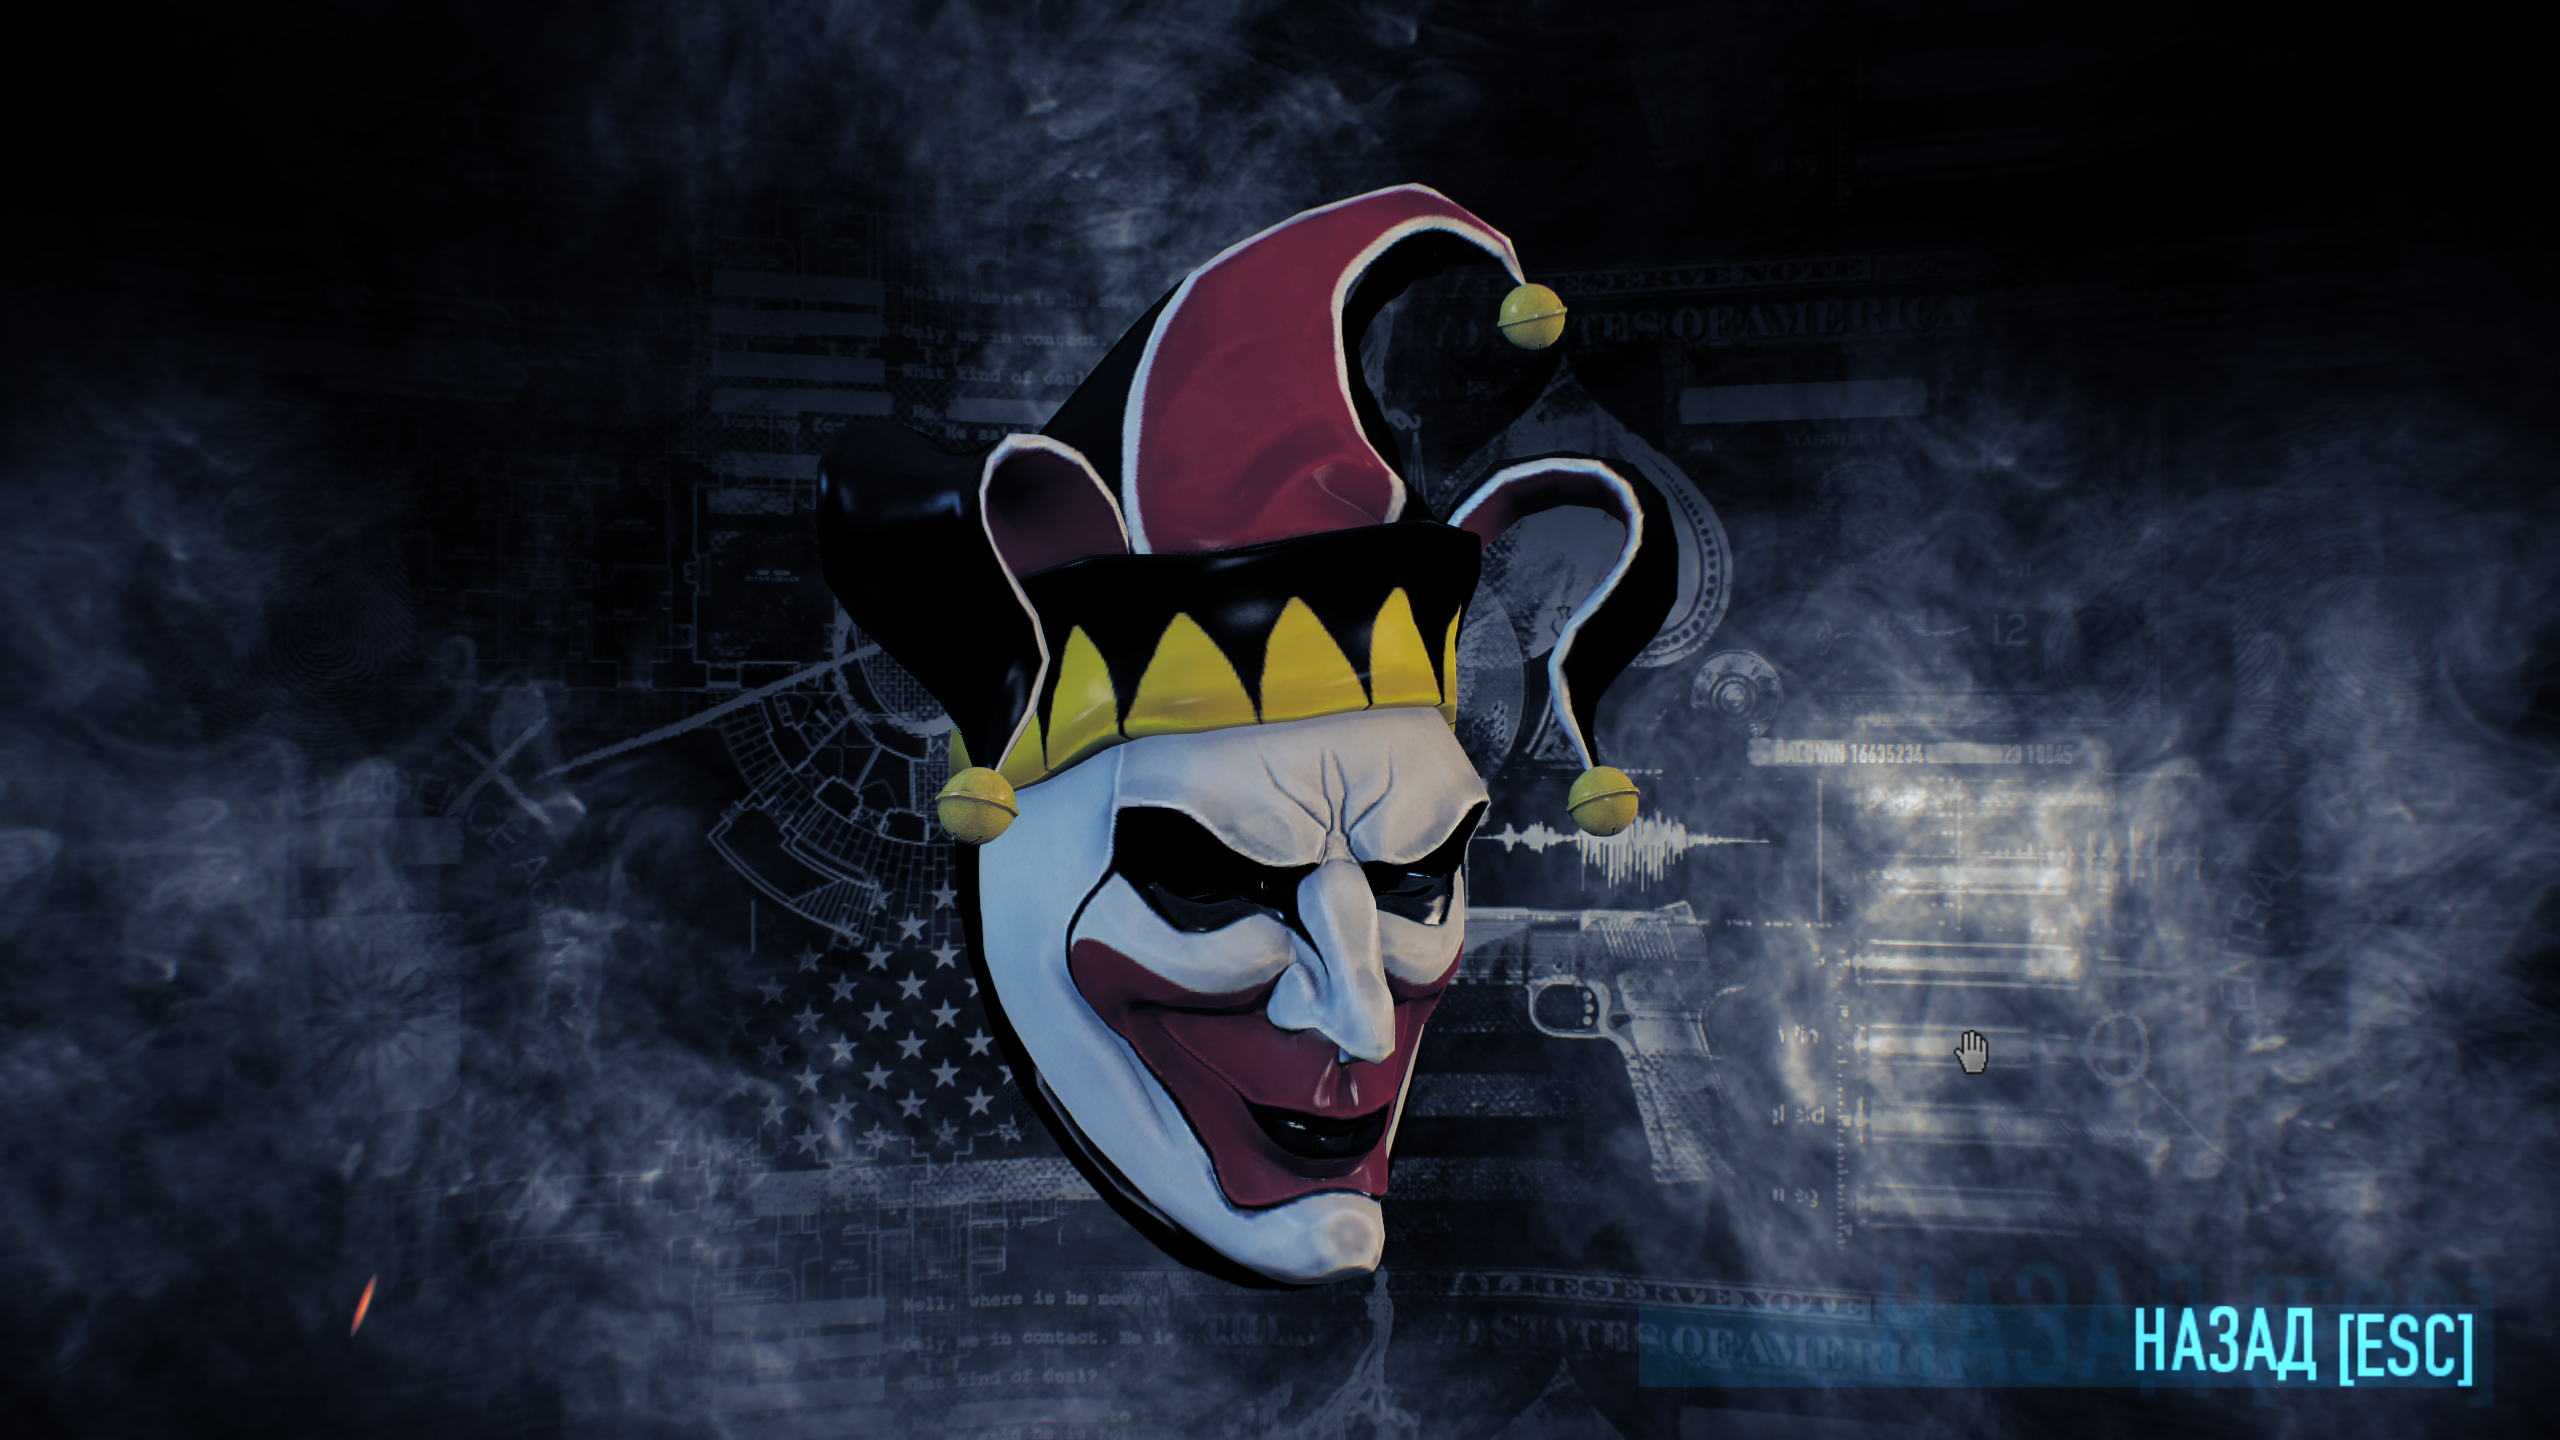 payday2_win32_release 2016-10-12 14-28-09-25.png - Payday 2